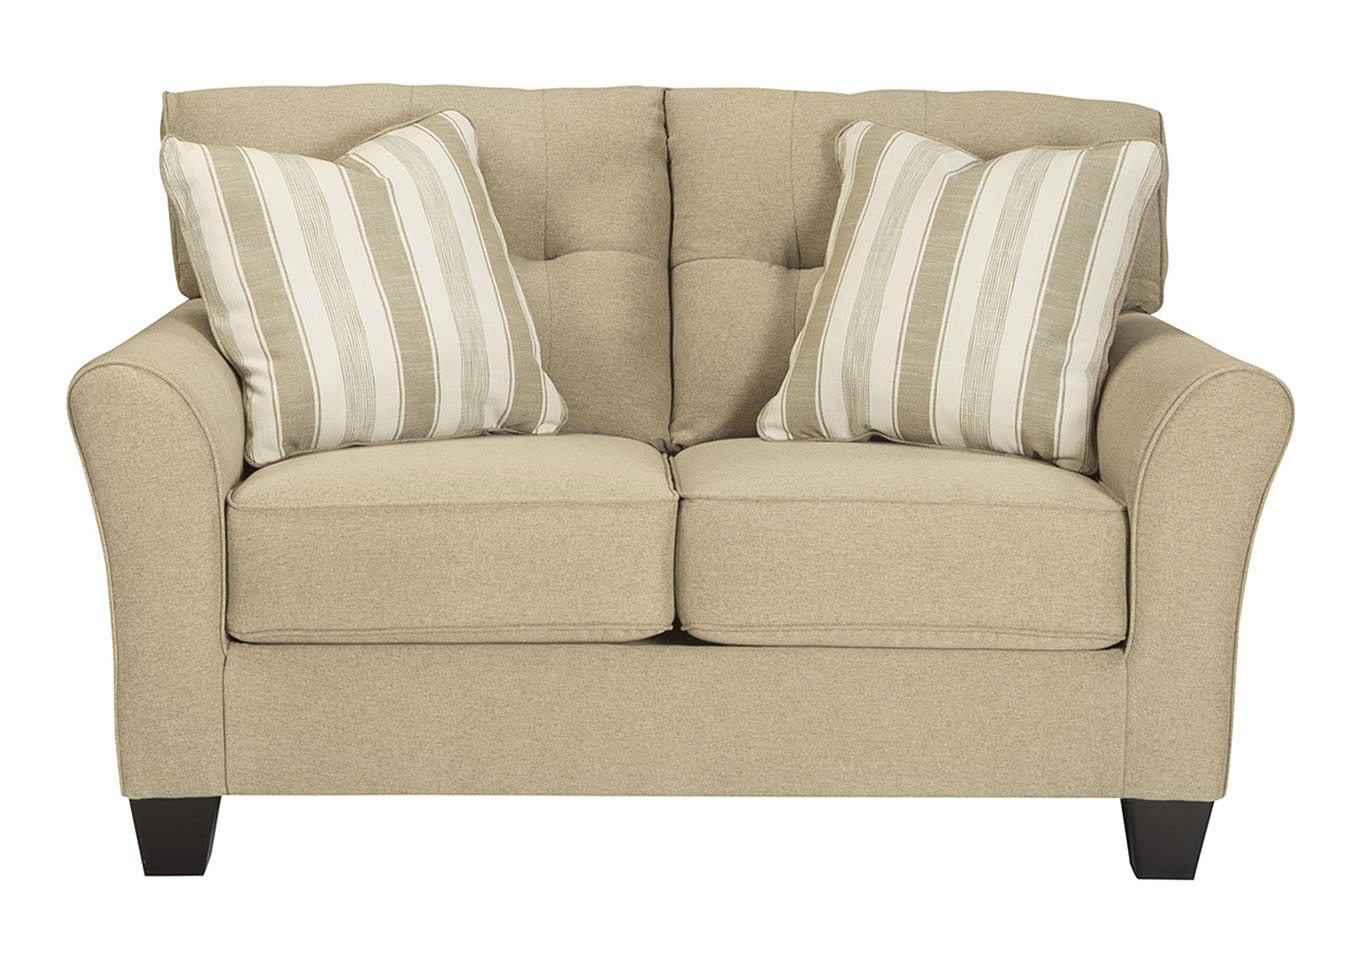 Furniture Liquidators Baton Rouge La Laryn Khaki Loveseat